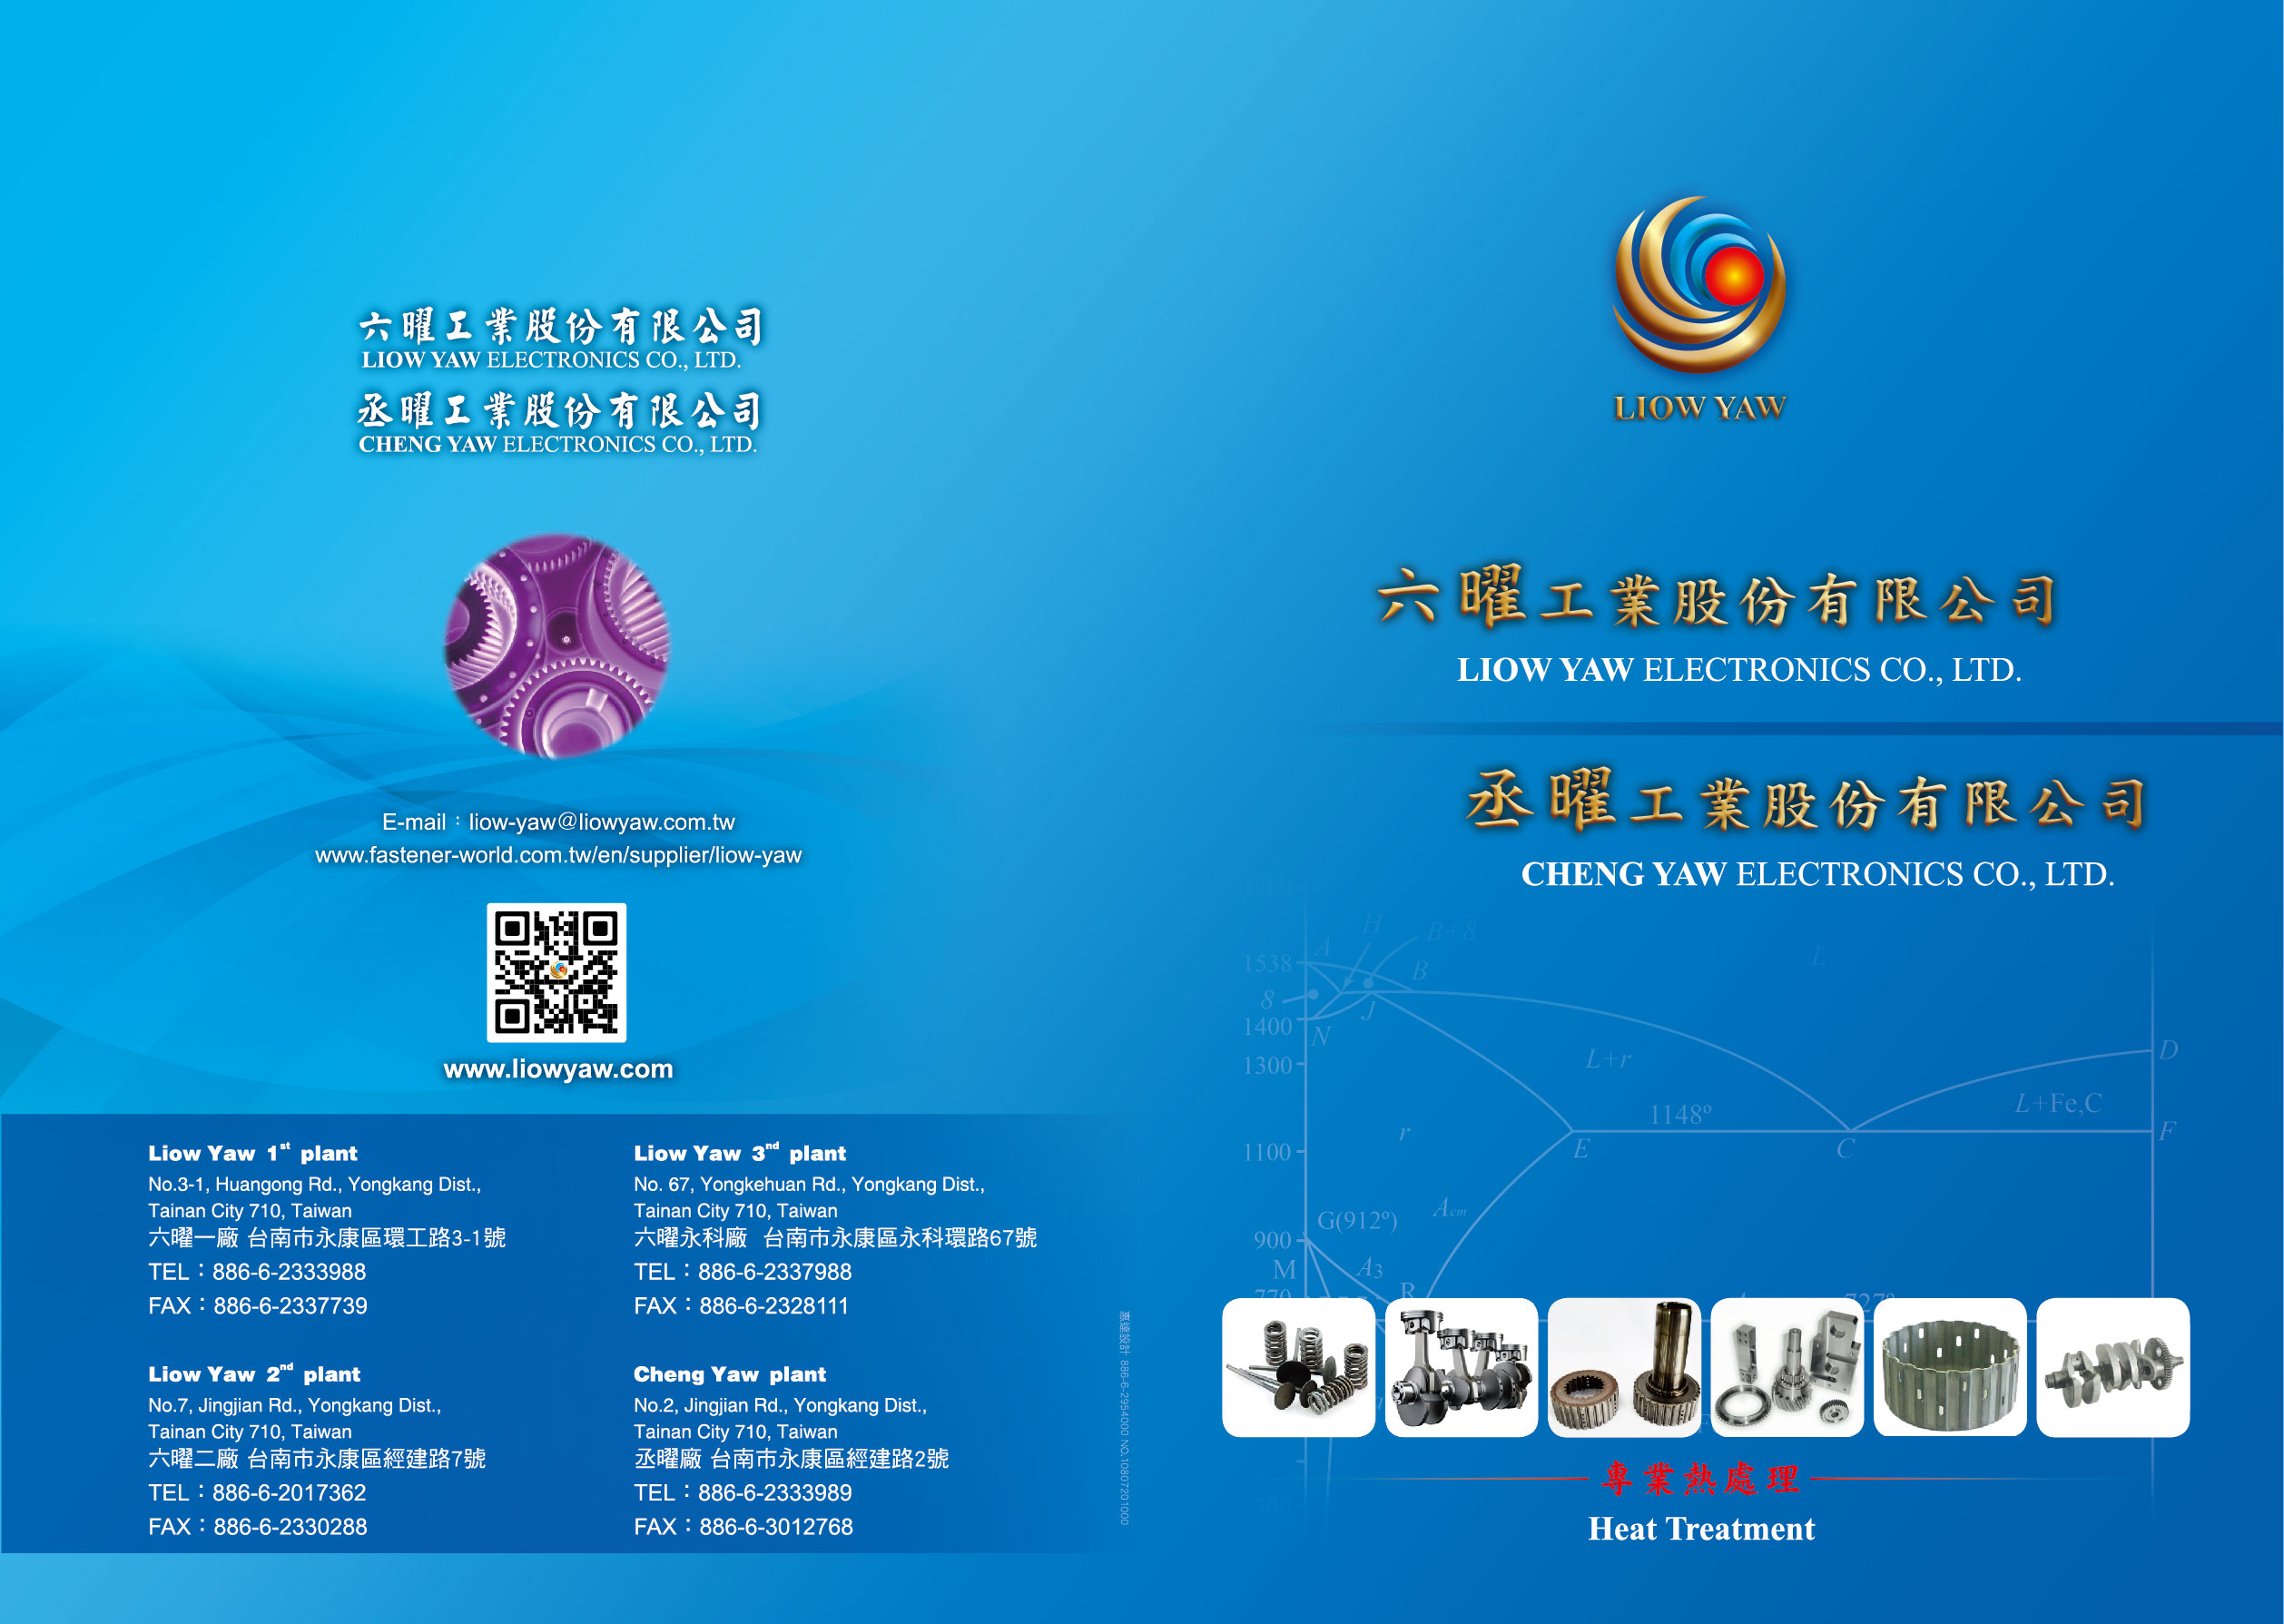 LIOW YAW ELECTRONICS CO., LTD. (CHENG YAW) Online Catalogues